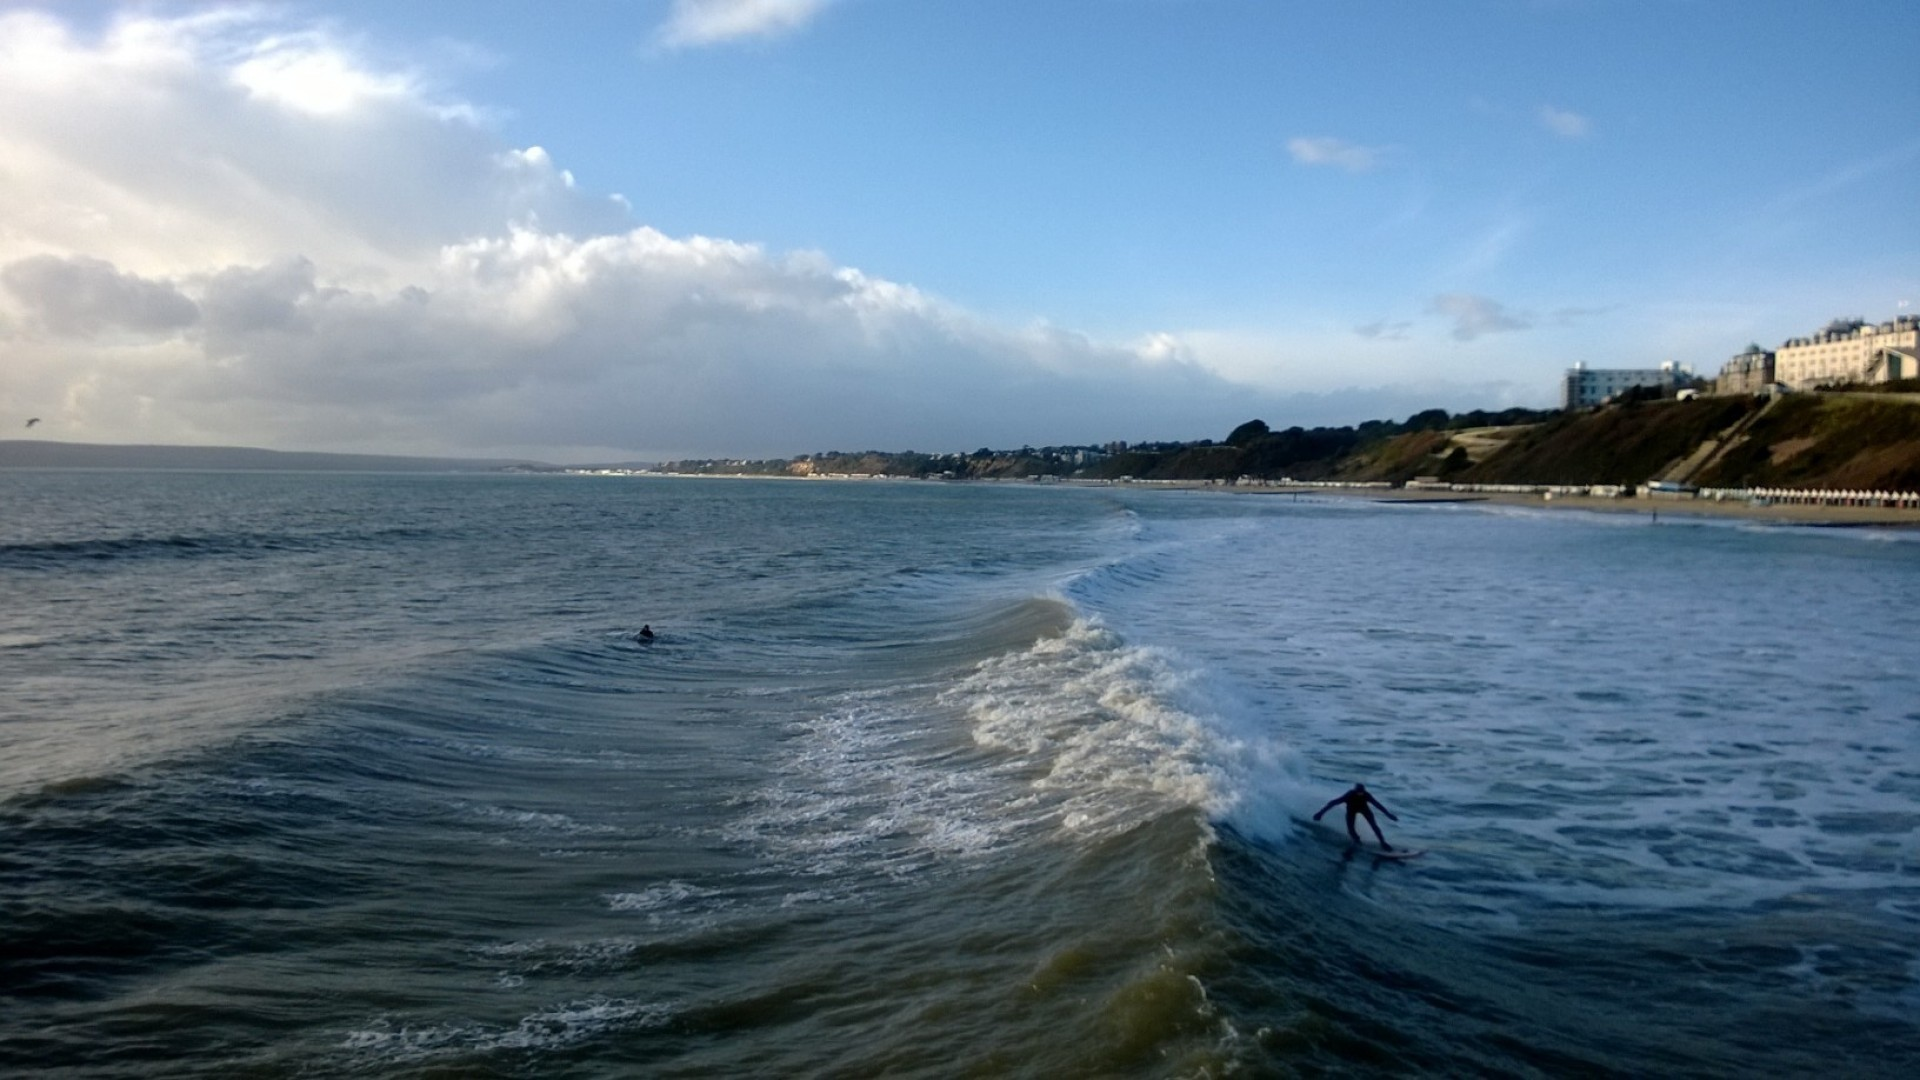 Fdownsurfer's photo of Bournemouth